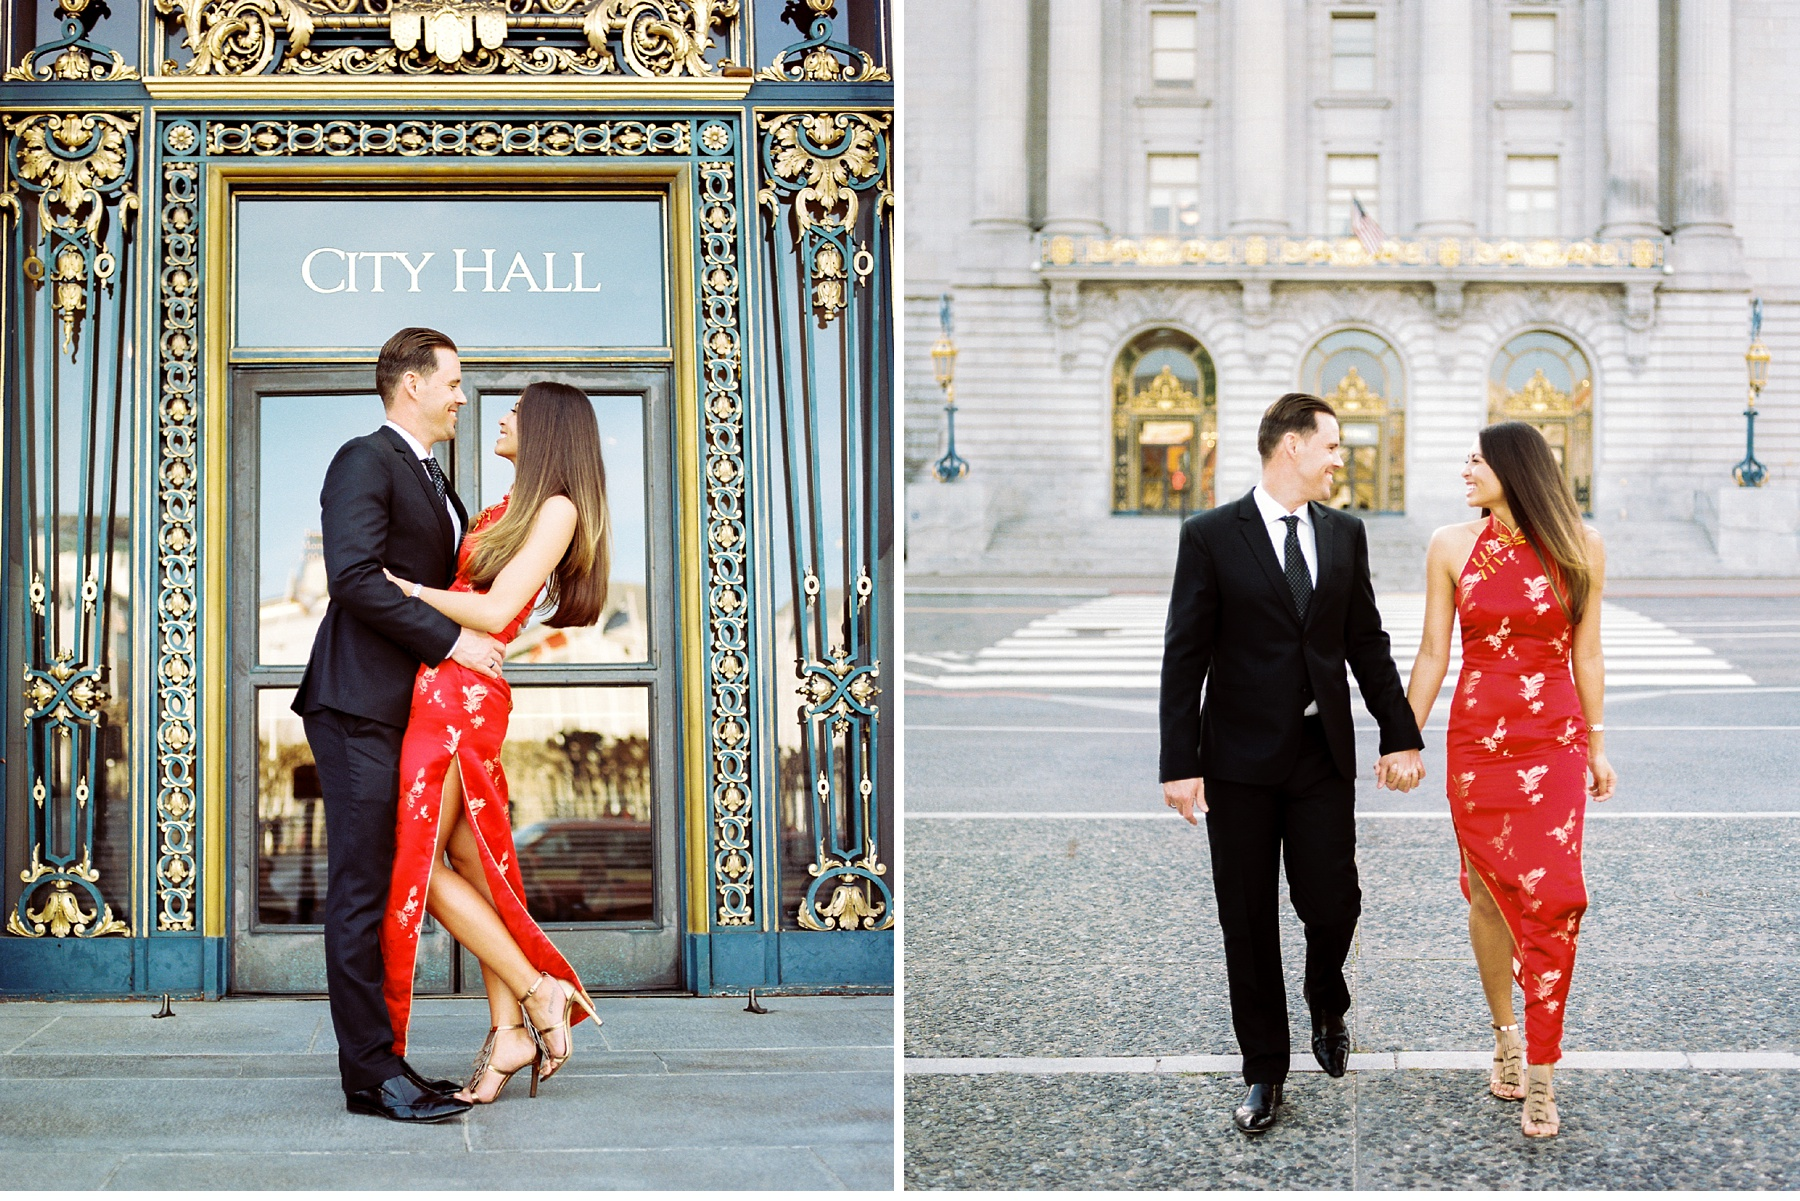 SF-City-Hall-Film-Photographer-Portra-400-Wedding-4.jpg